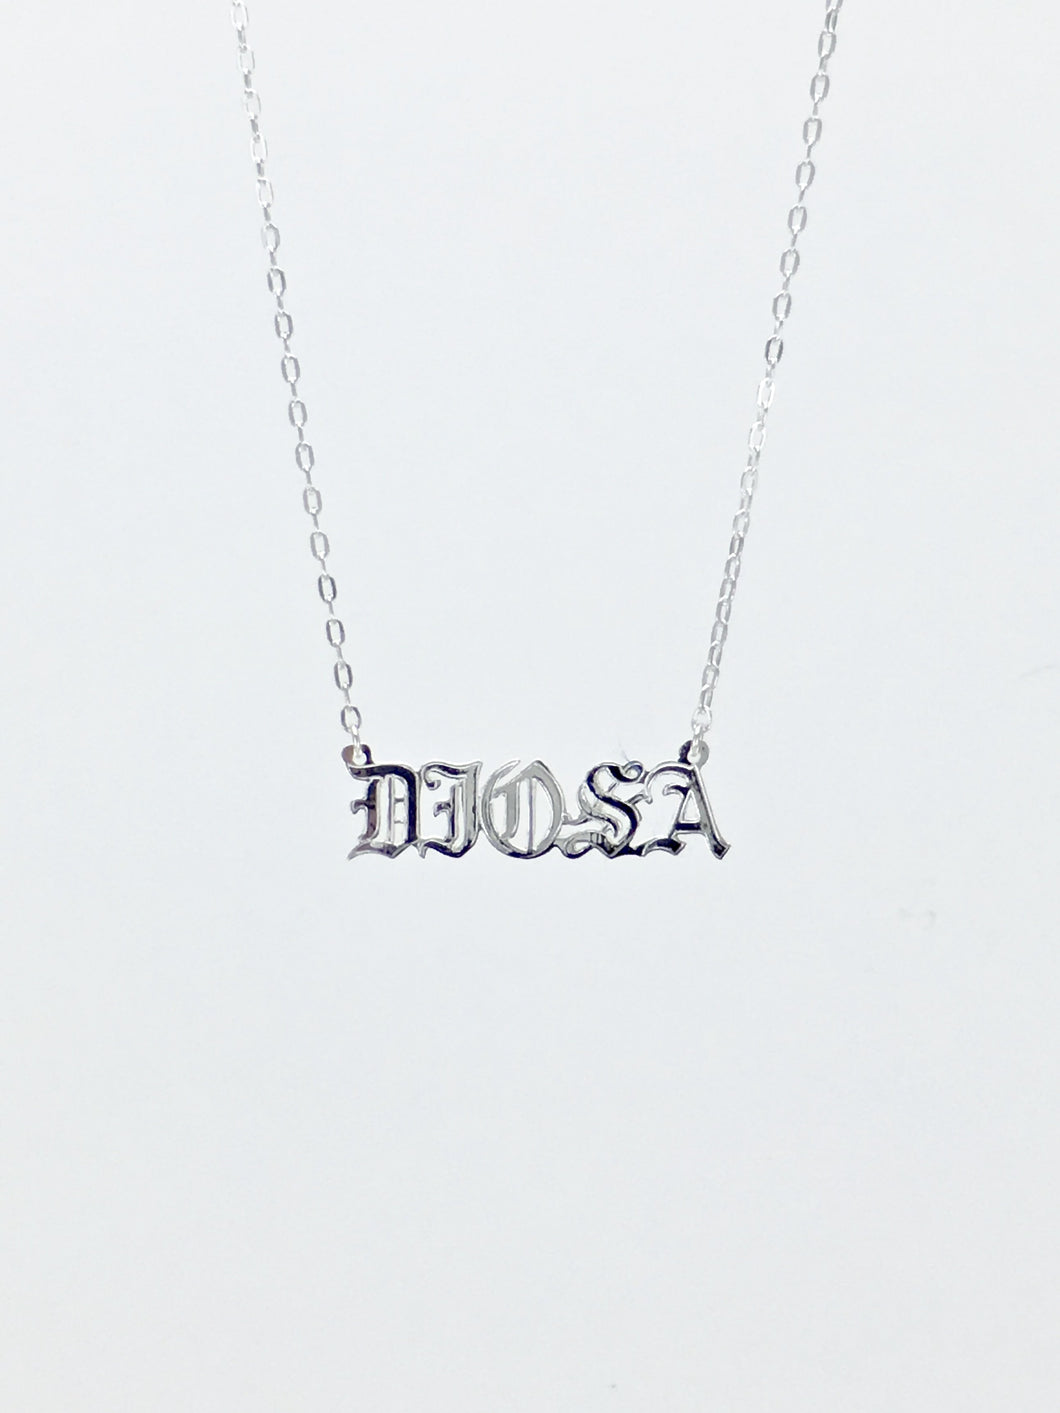 DIOSA nameplate chain necklace in sterling silver